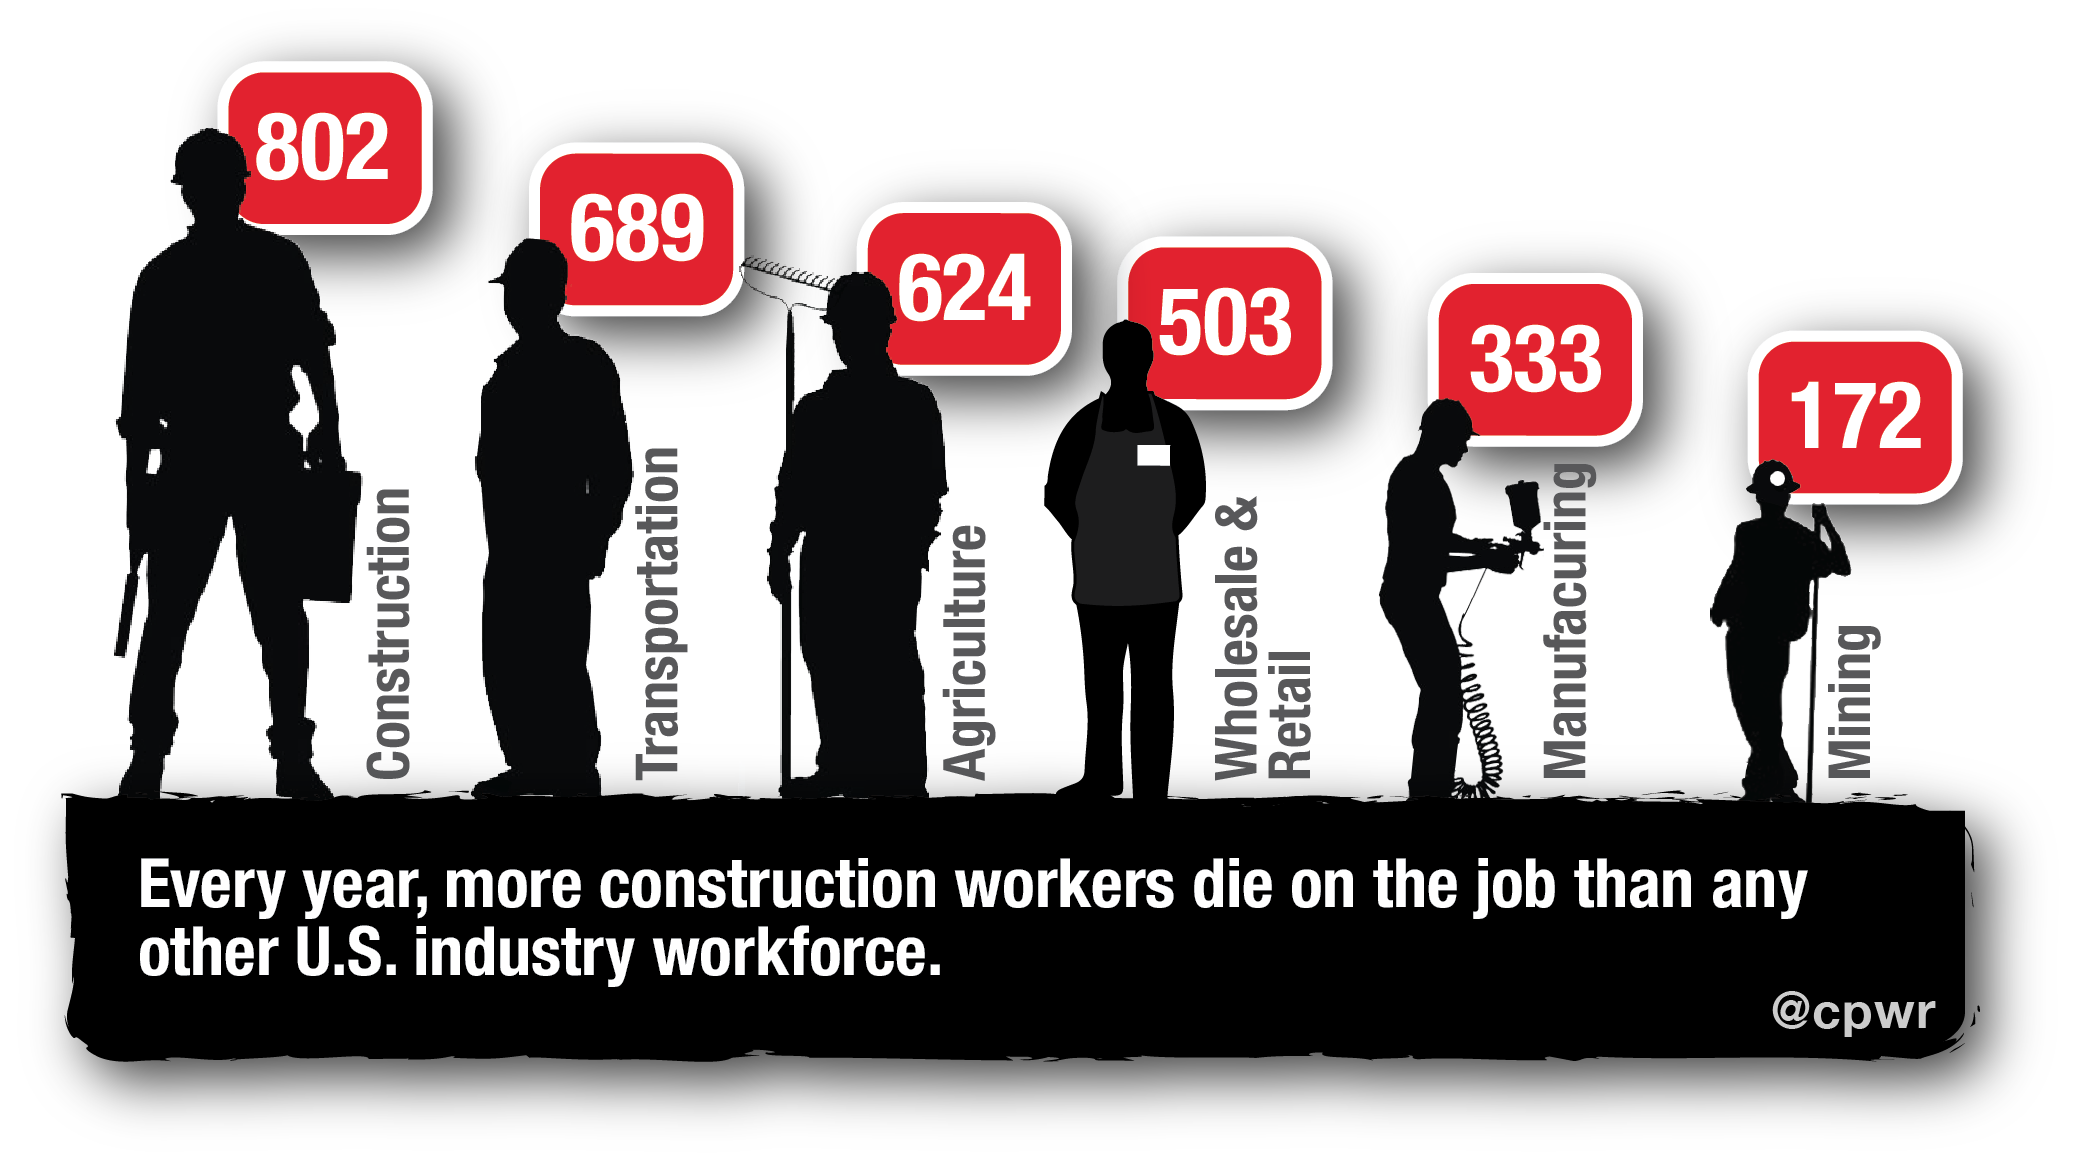 More construction workers die on the job than any other U.S. workforce